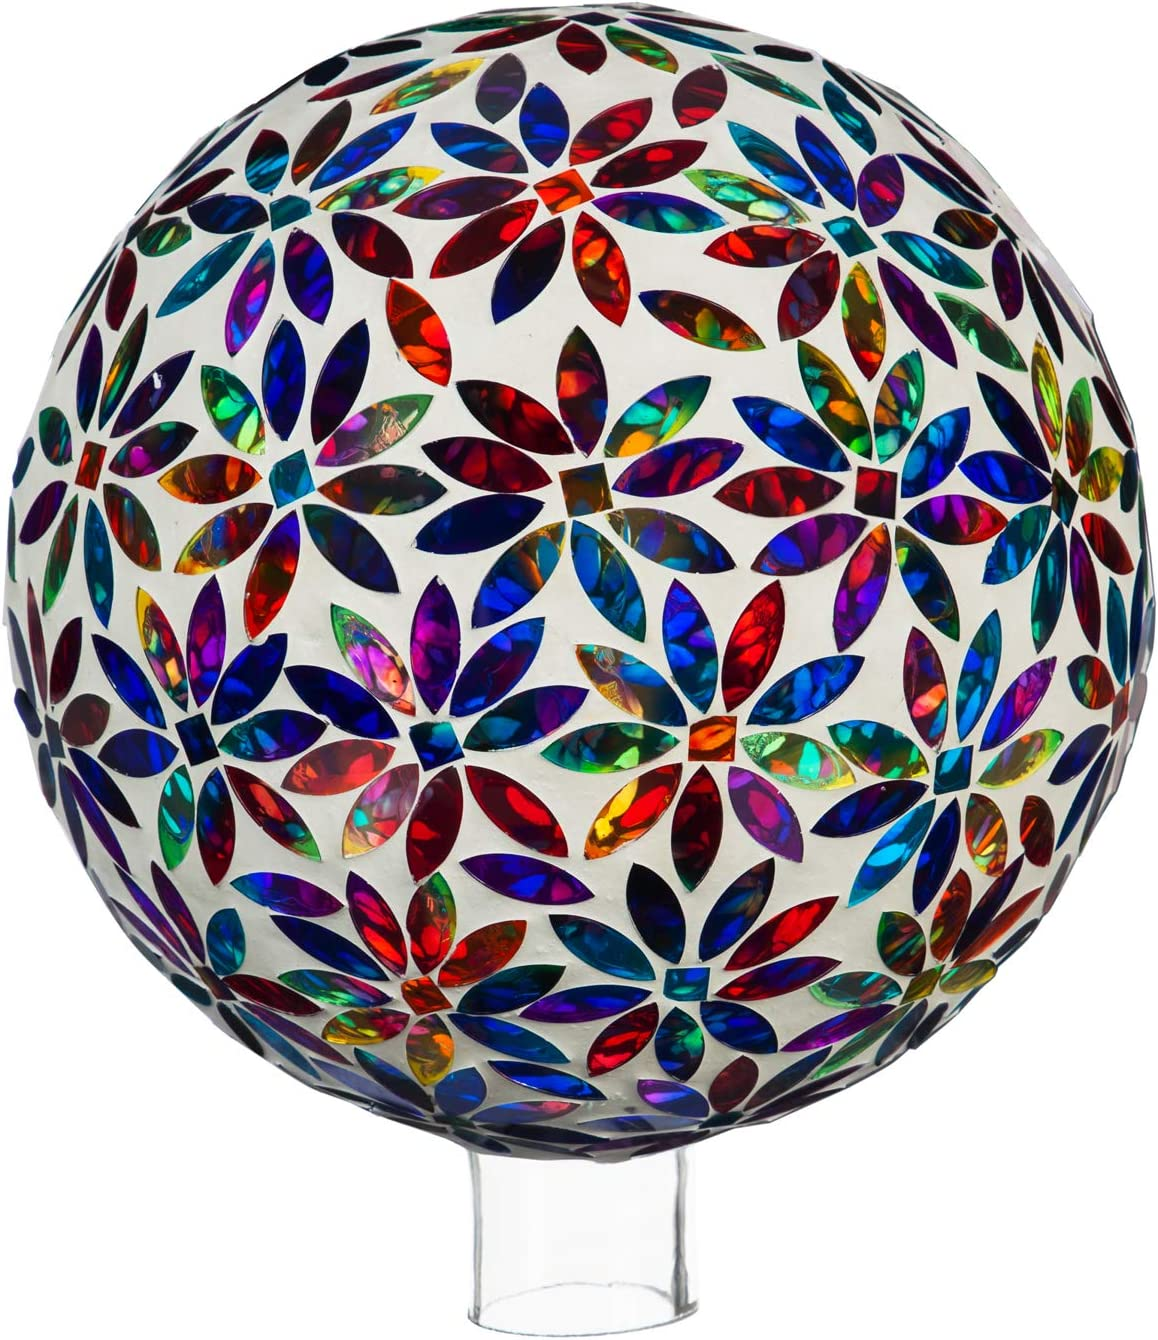 Evergreen Garden Beautiful Multi Colored Flowers Mosaic Glass Gazing Ball - 10 x 10 x 12 Inches Fade and Weather Resistant Outdoor Decoration for Homes, Yards and Gardens